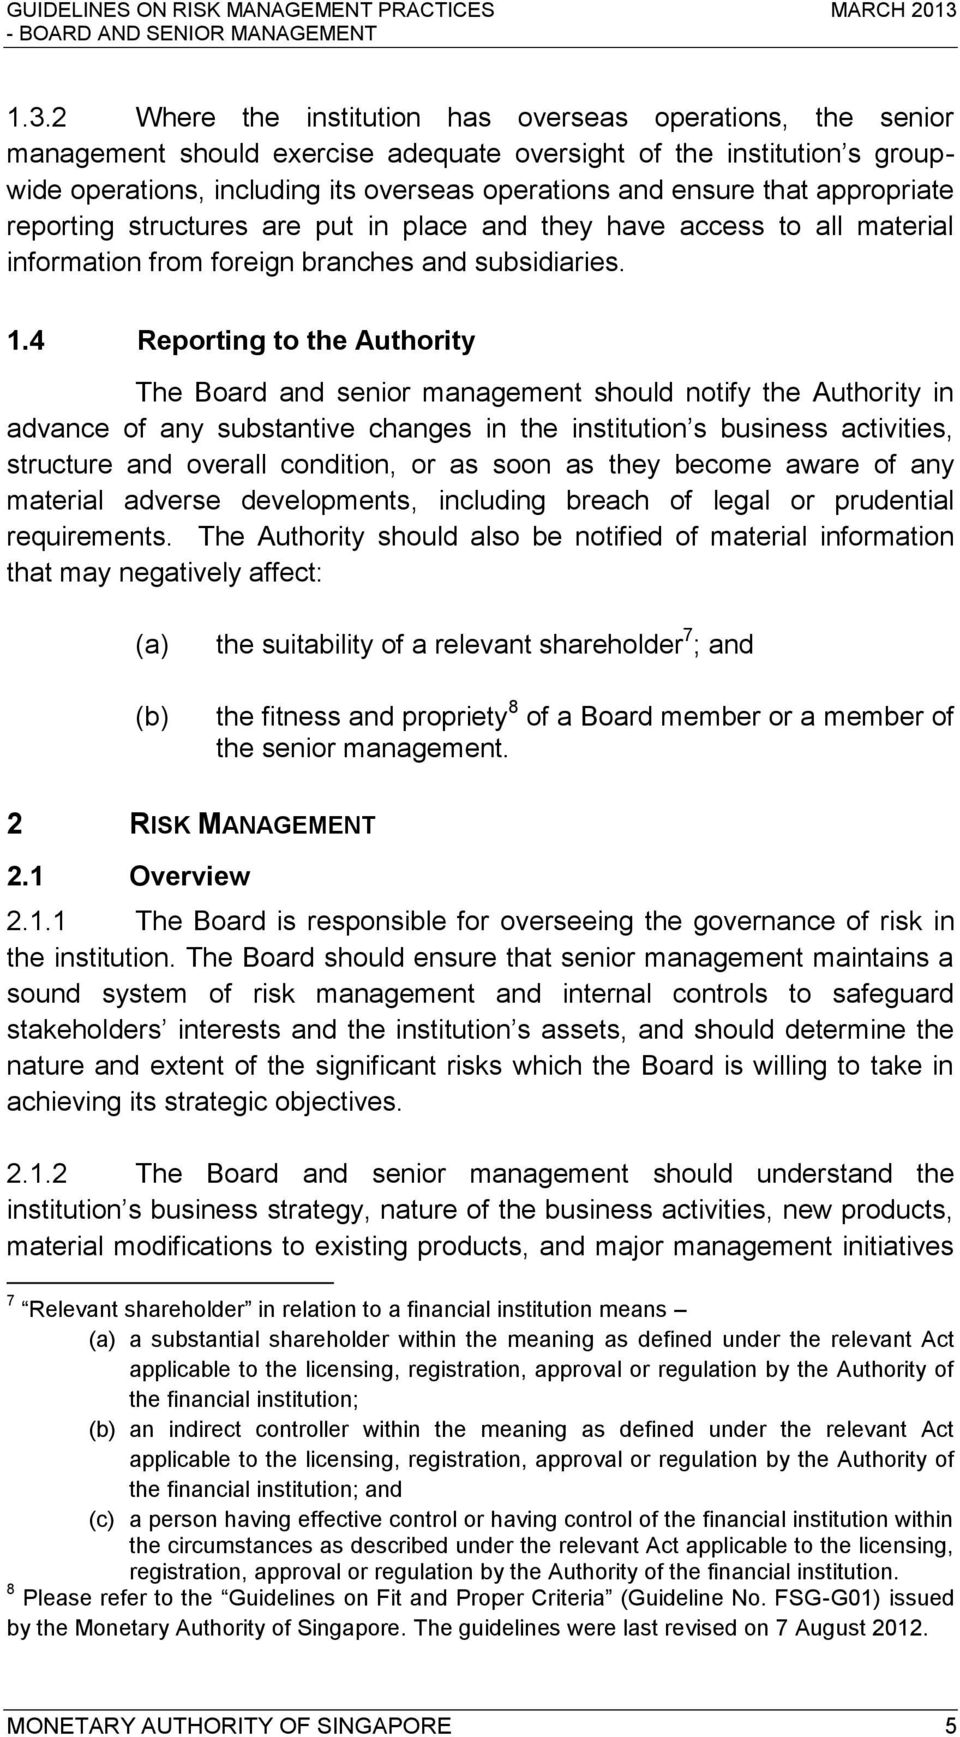 4 Reporting to the Authority The Board and senior management should notify the Authority in advance of any substantive changes in the institution s business activities, structure and overall